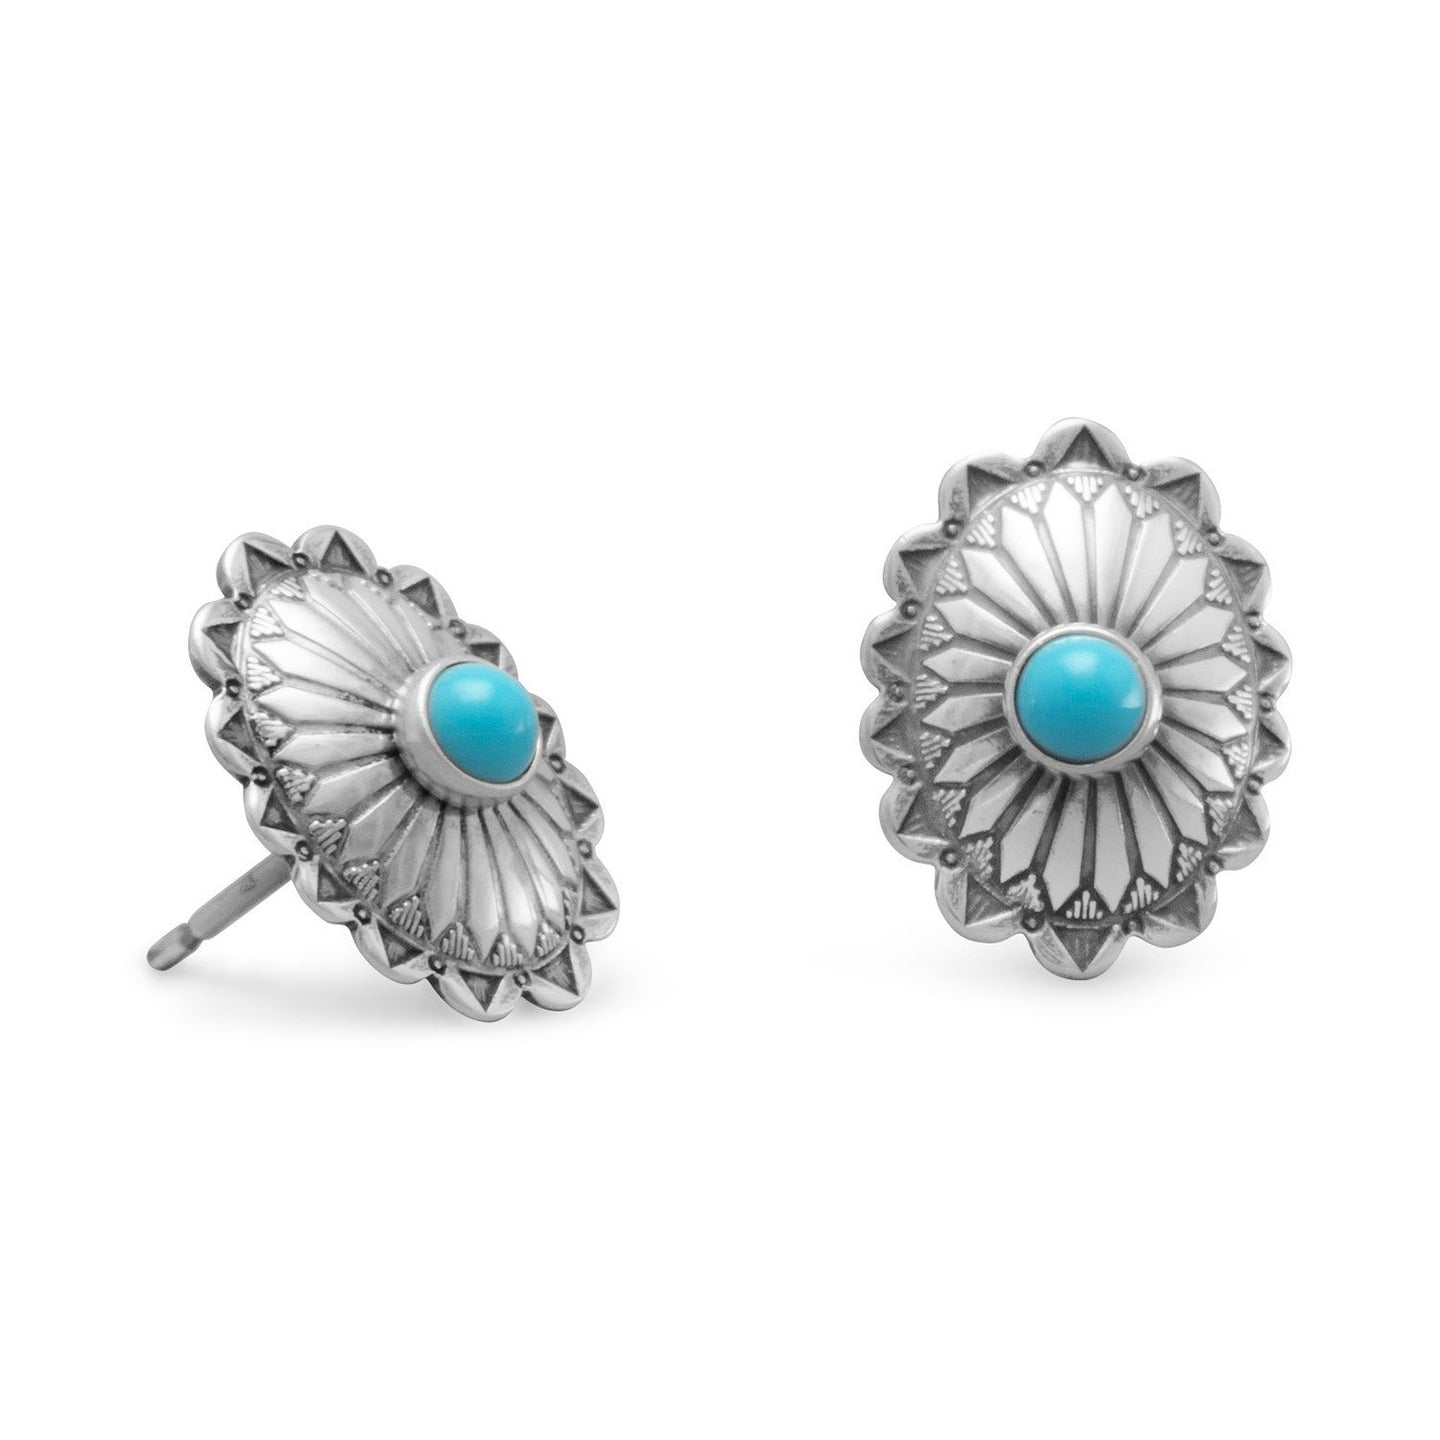 Oxidized Turquoise Concho Stud Earrings - the-southern-magnolia-too